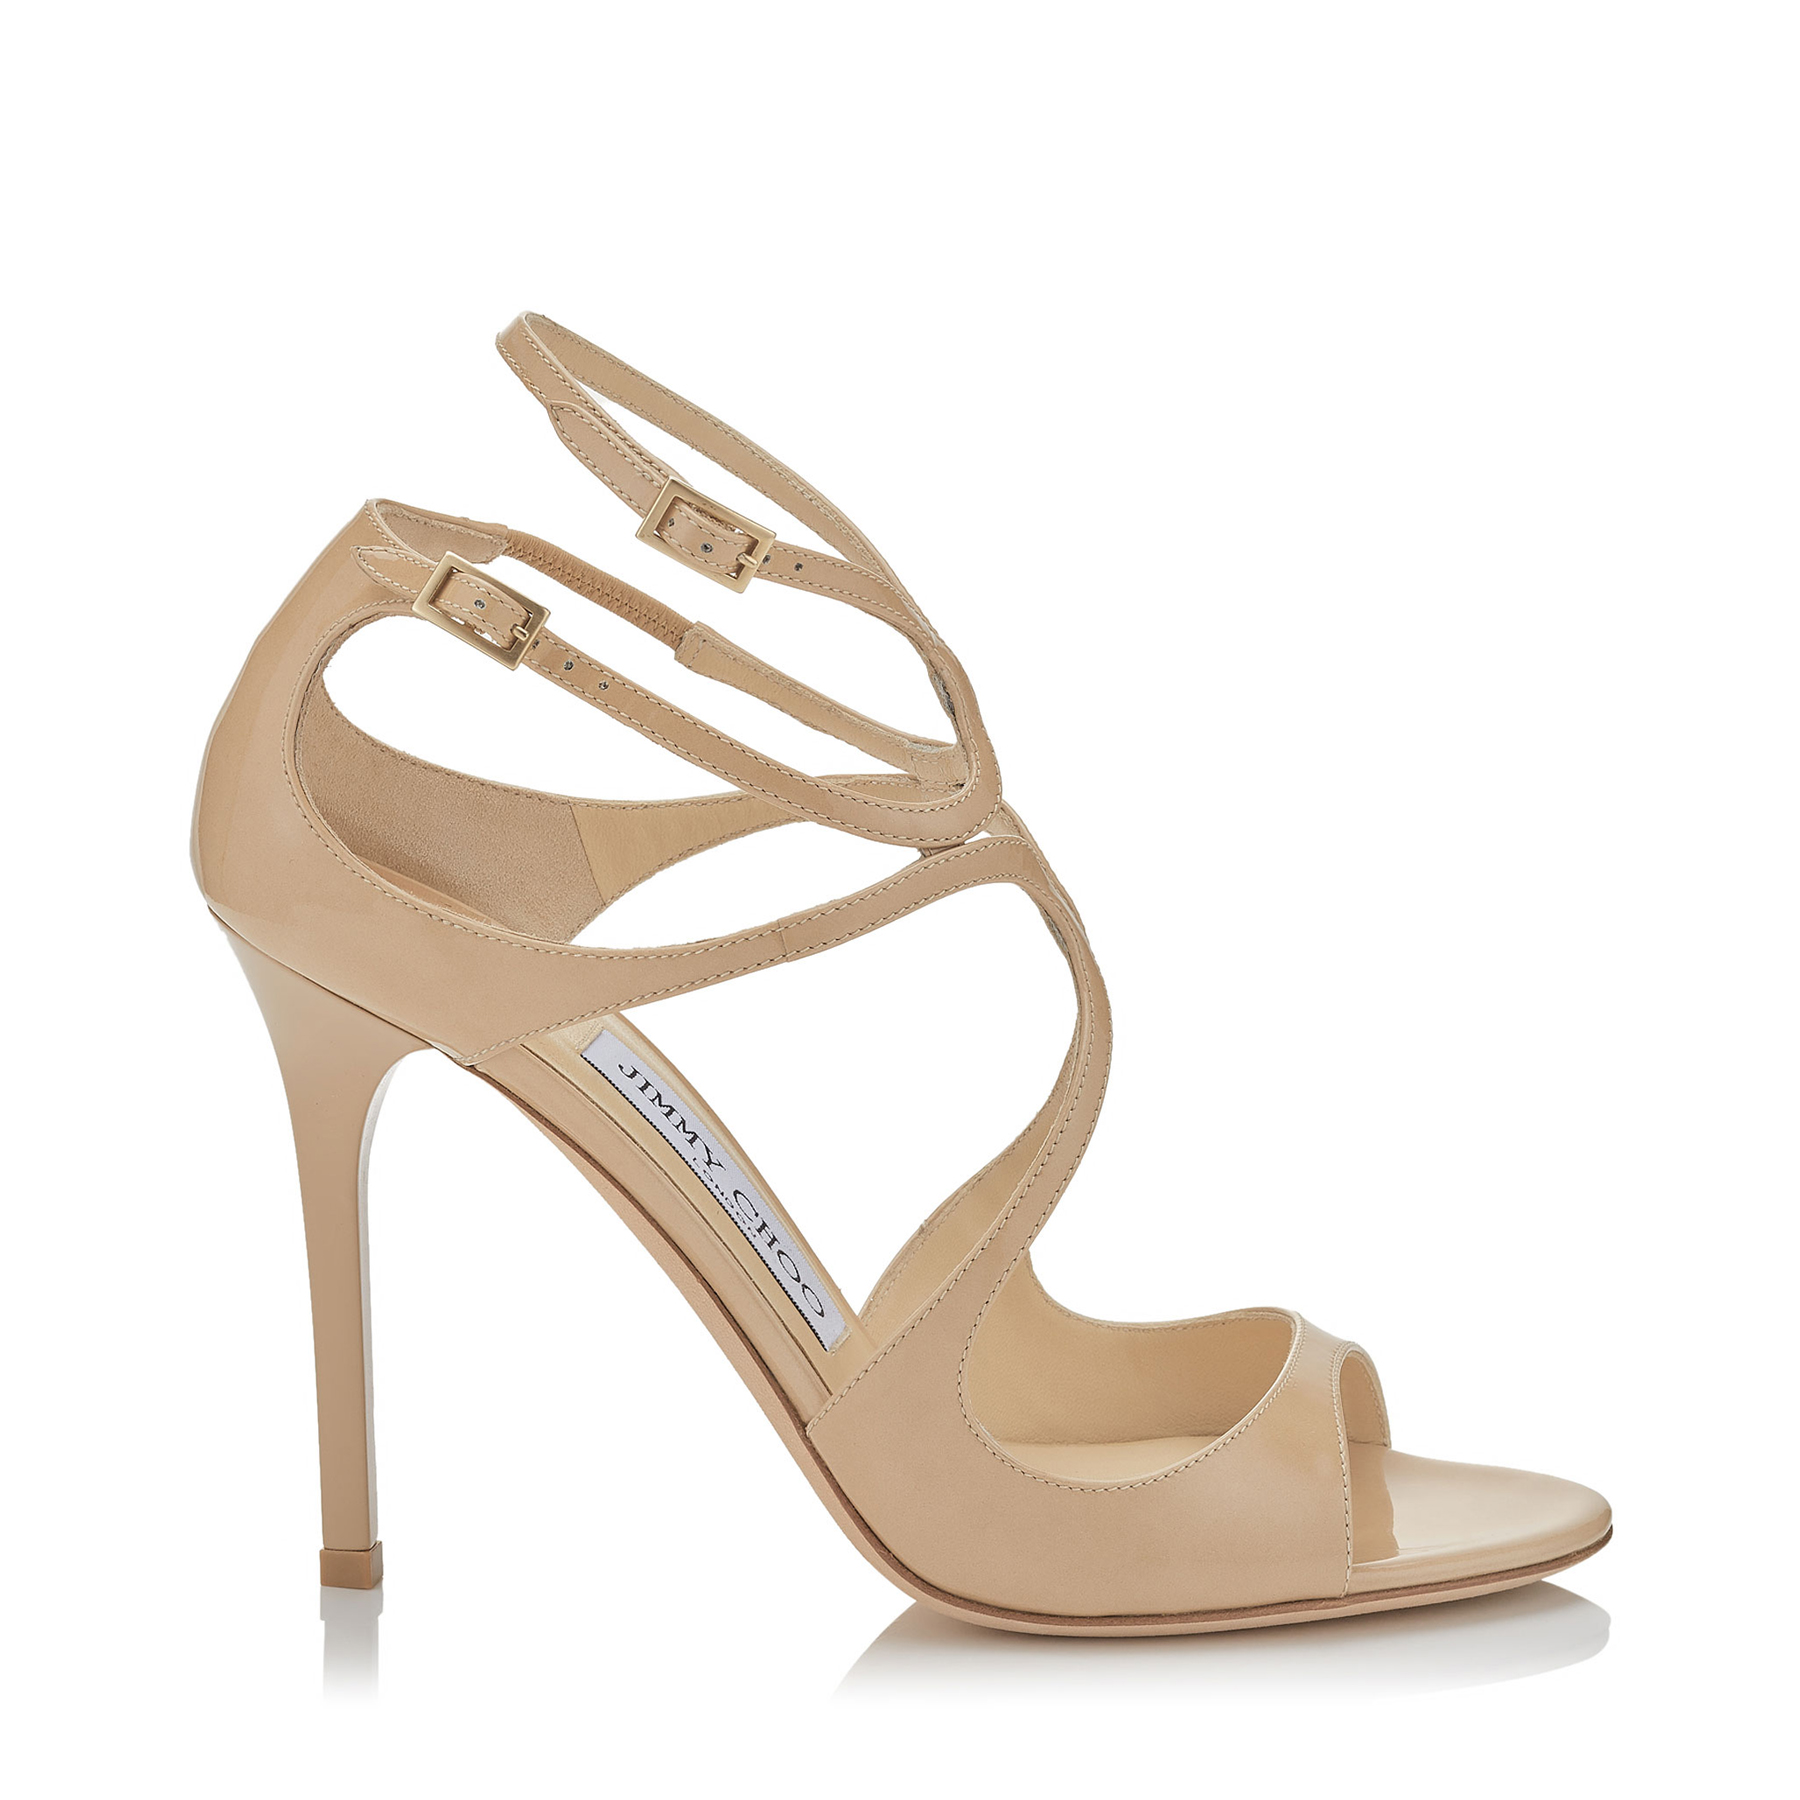 LANG Nude Patent Sandals by Jimmy Choo